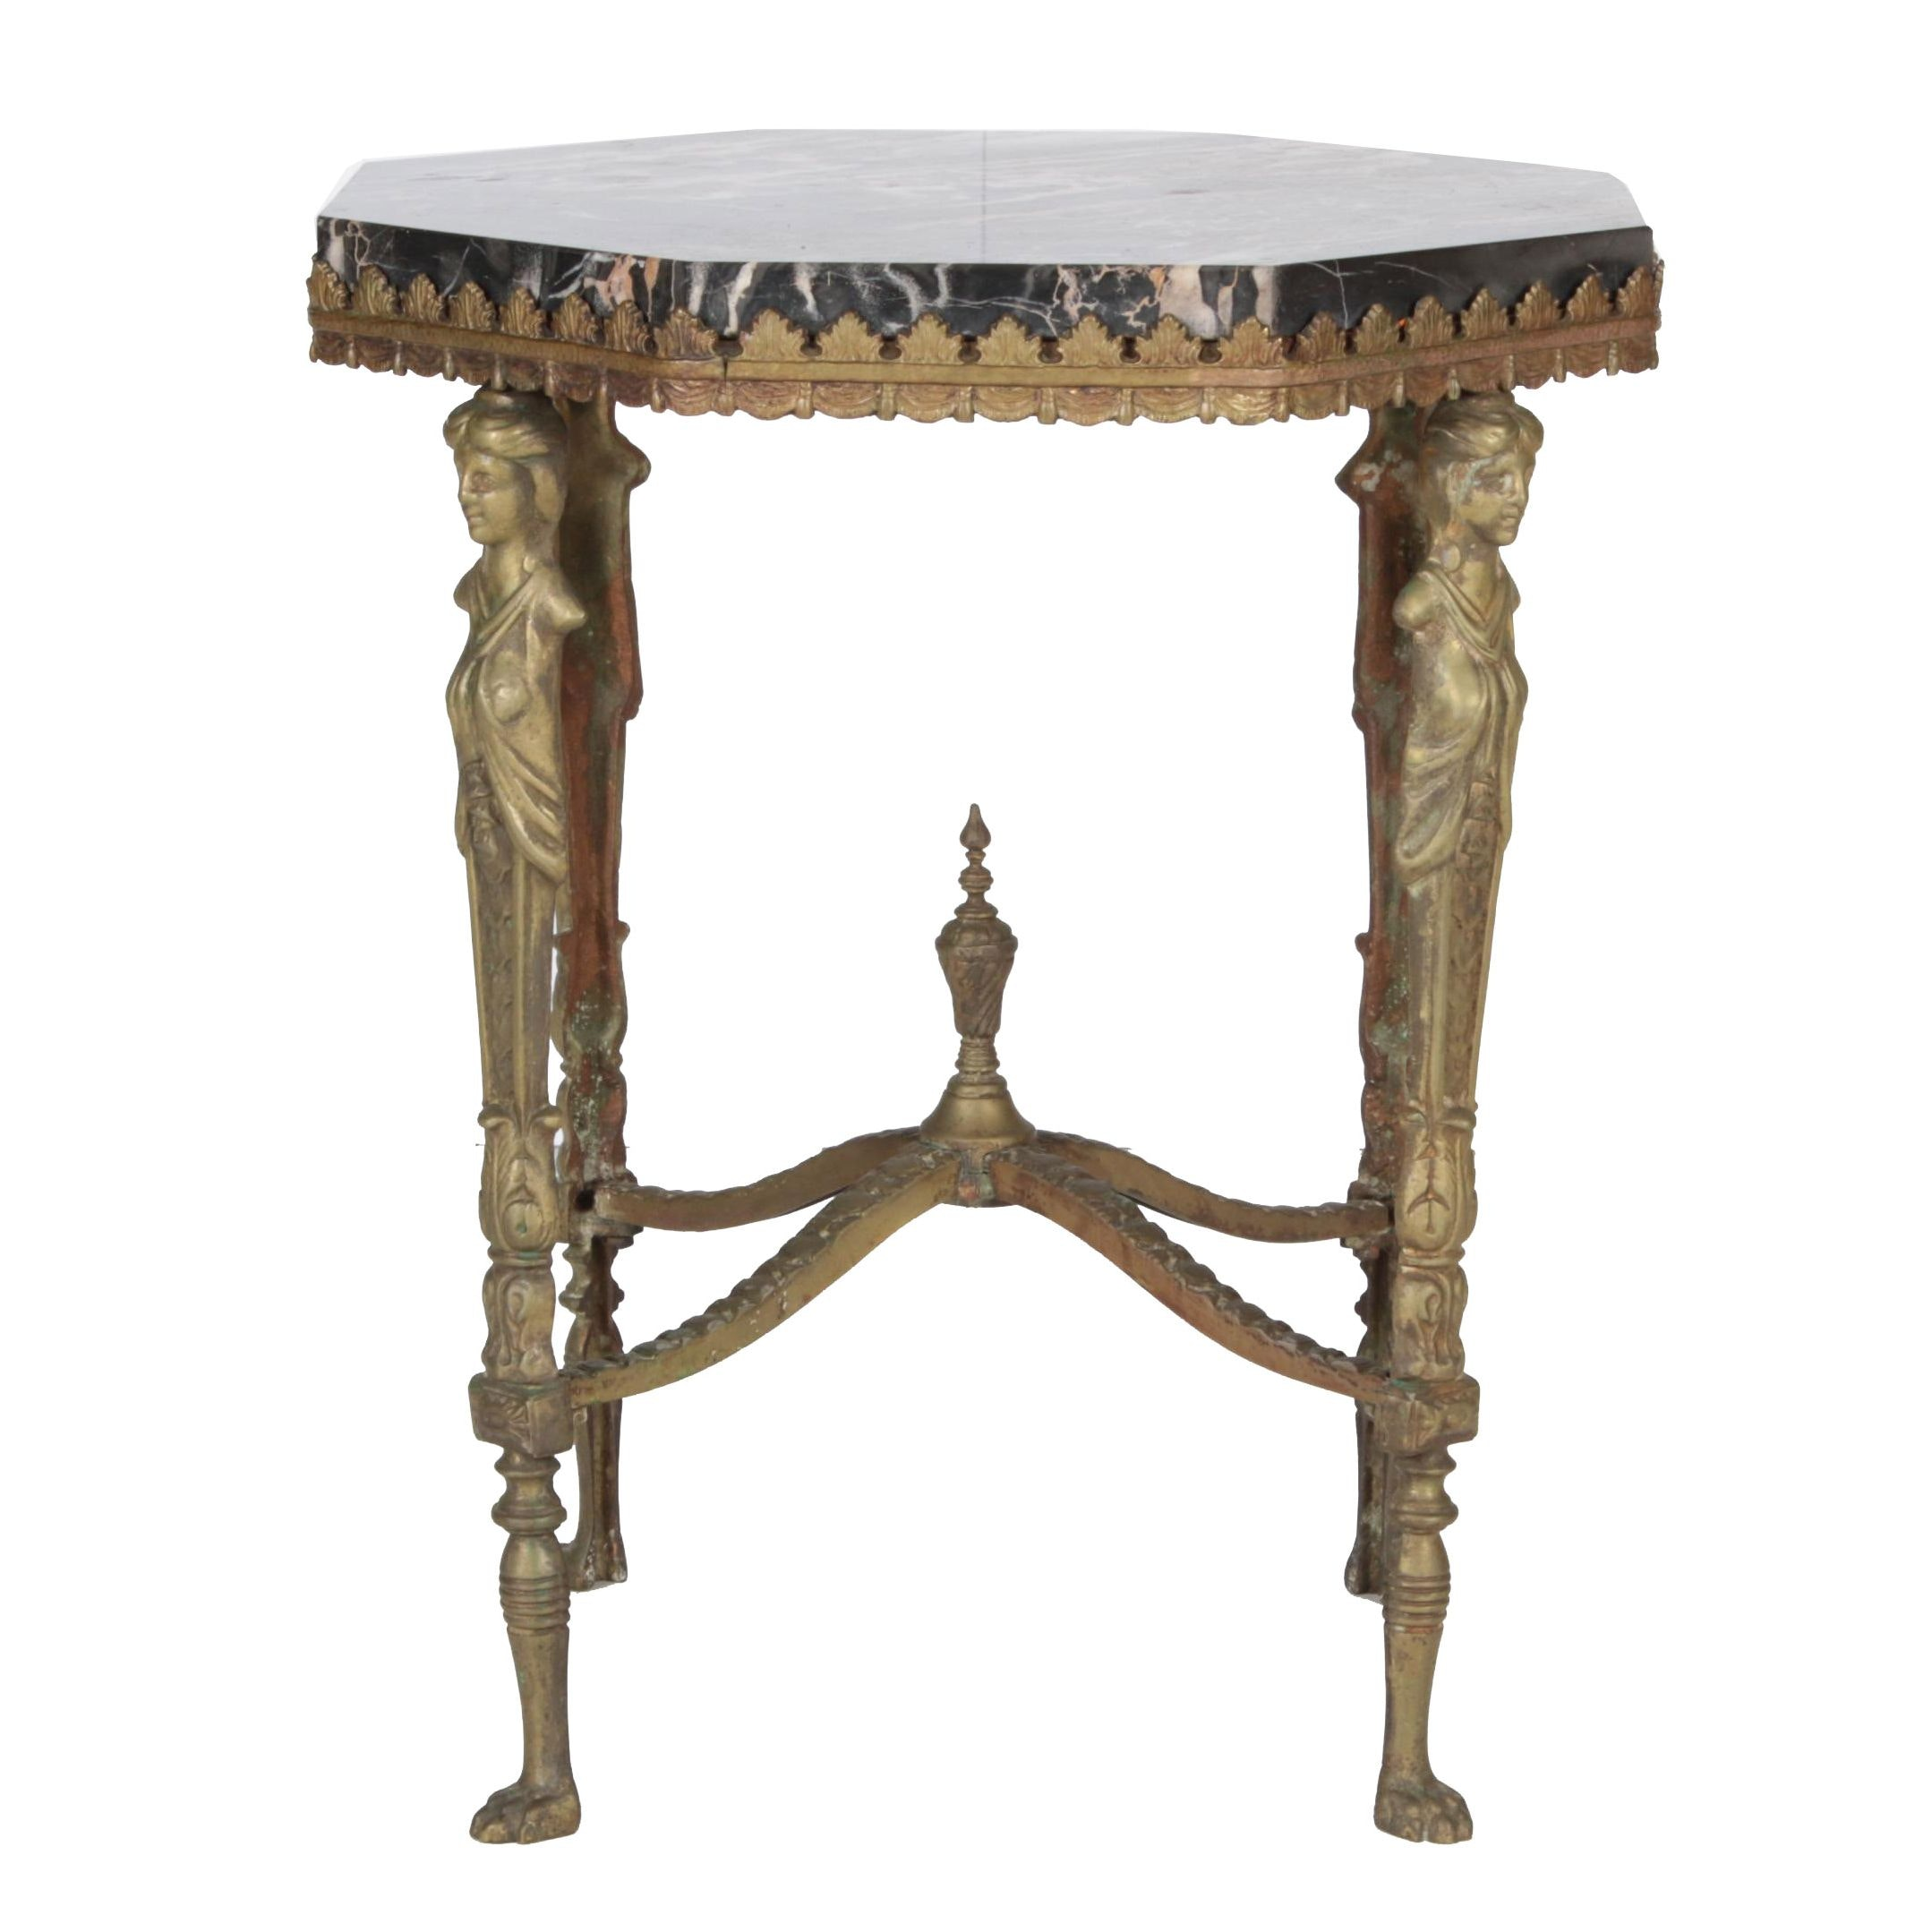 20th Century Italian Neoclassical Style Marble Top Side Table